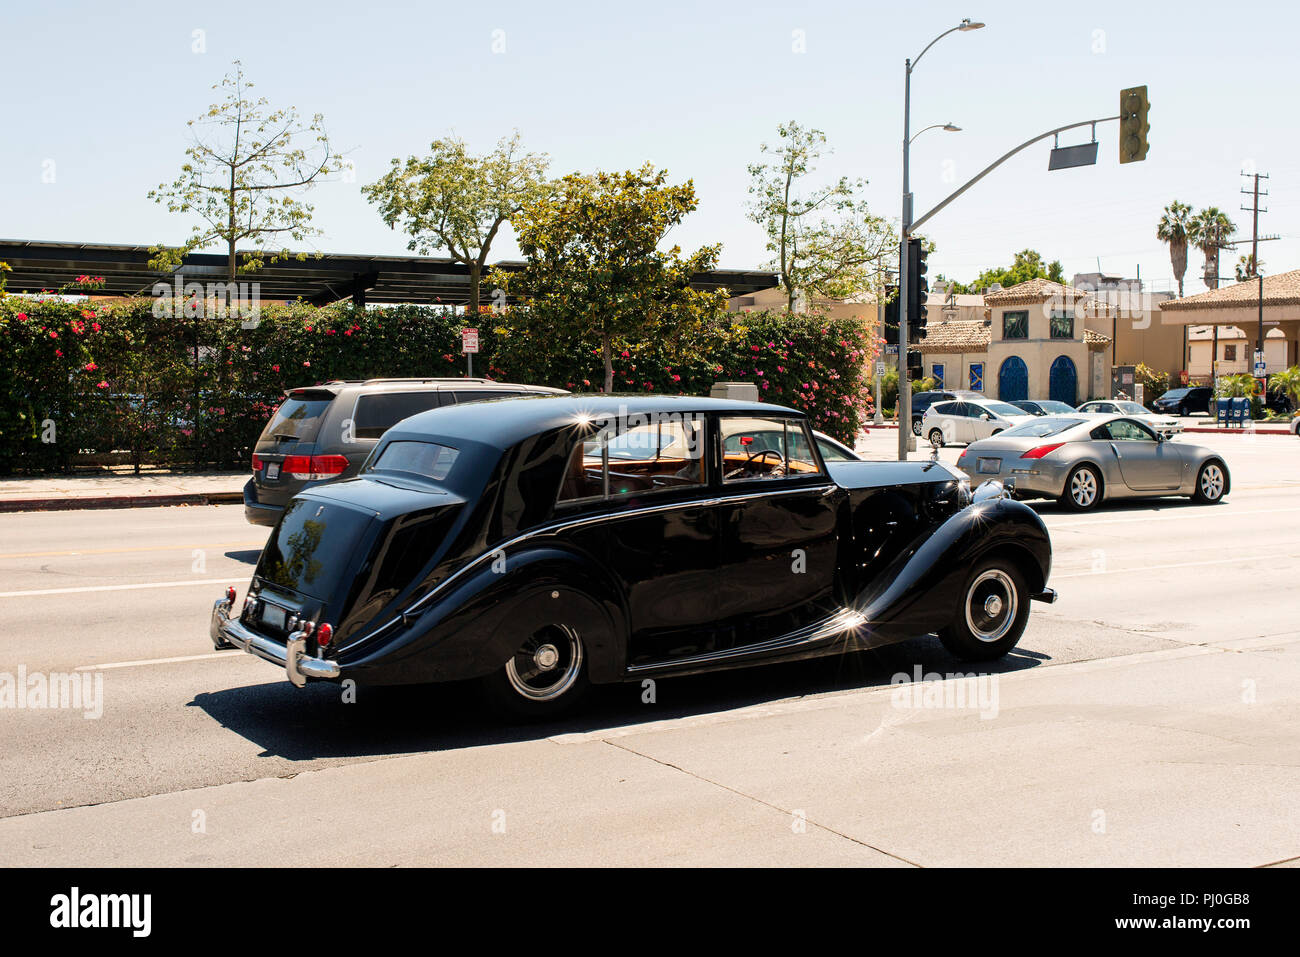 A view of an antique classic car passing by the street in West Hollywood, California in summer time - Stock Image